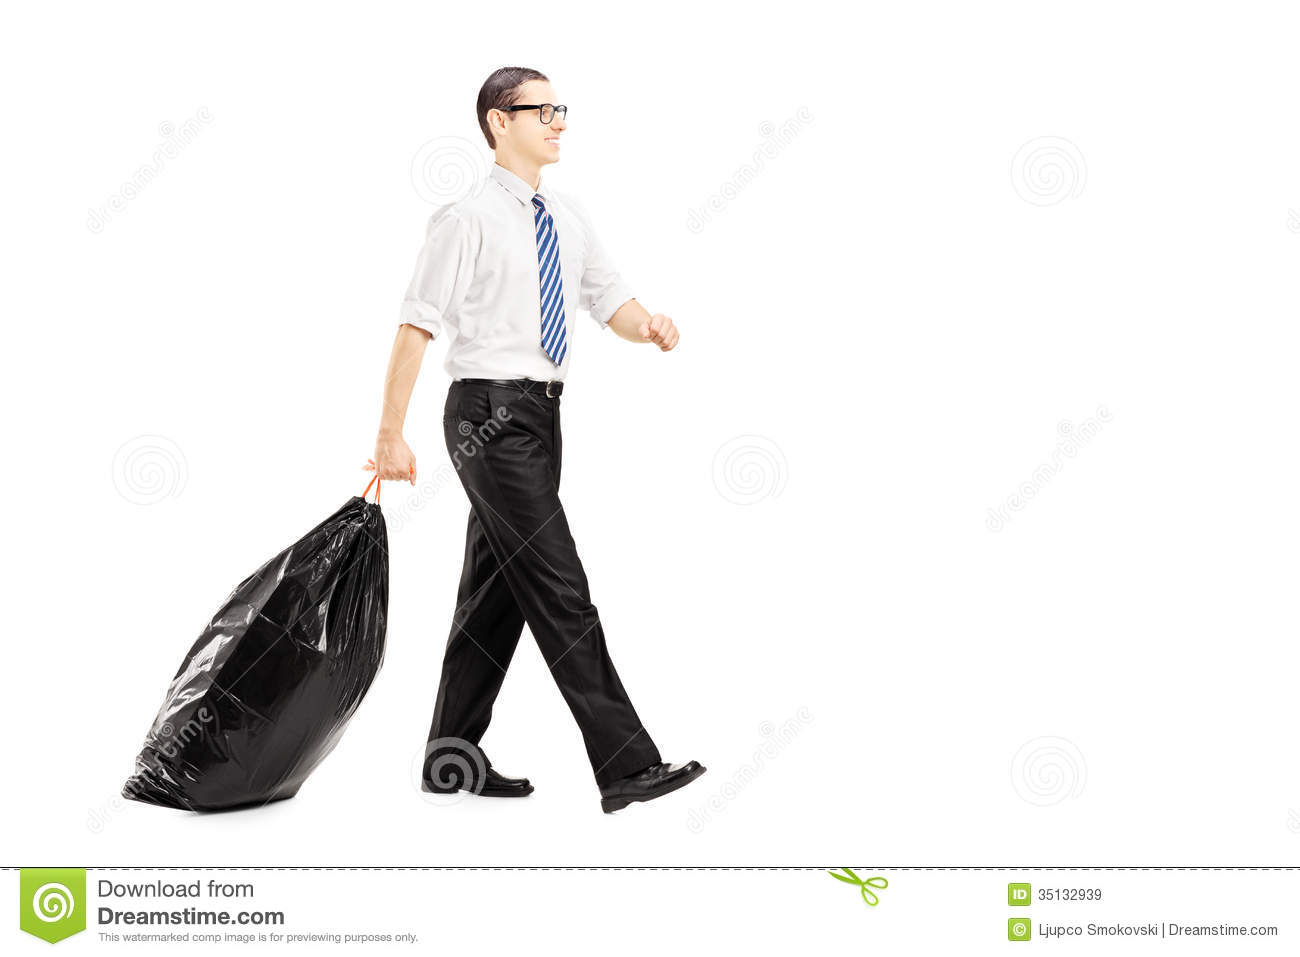 Male Carrying A Garbage Bag And Walking Isolated On White Background